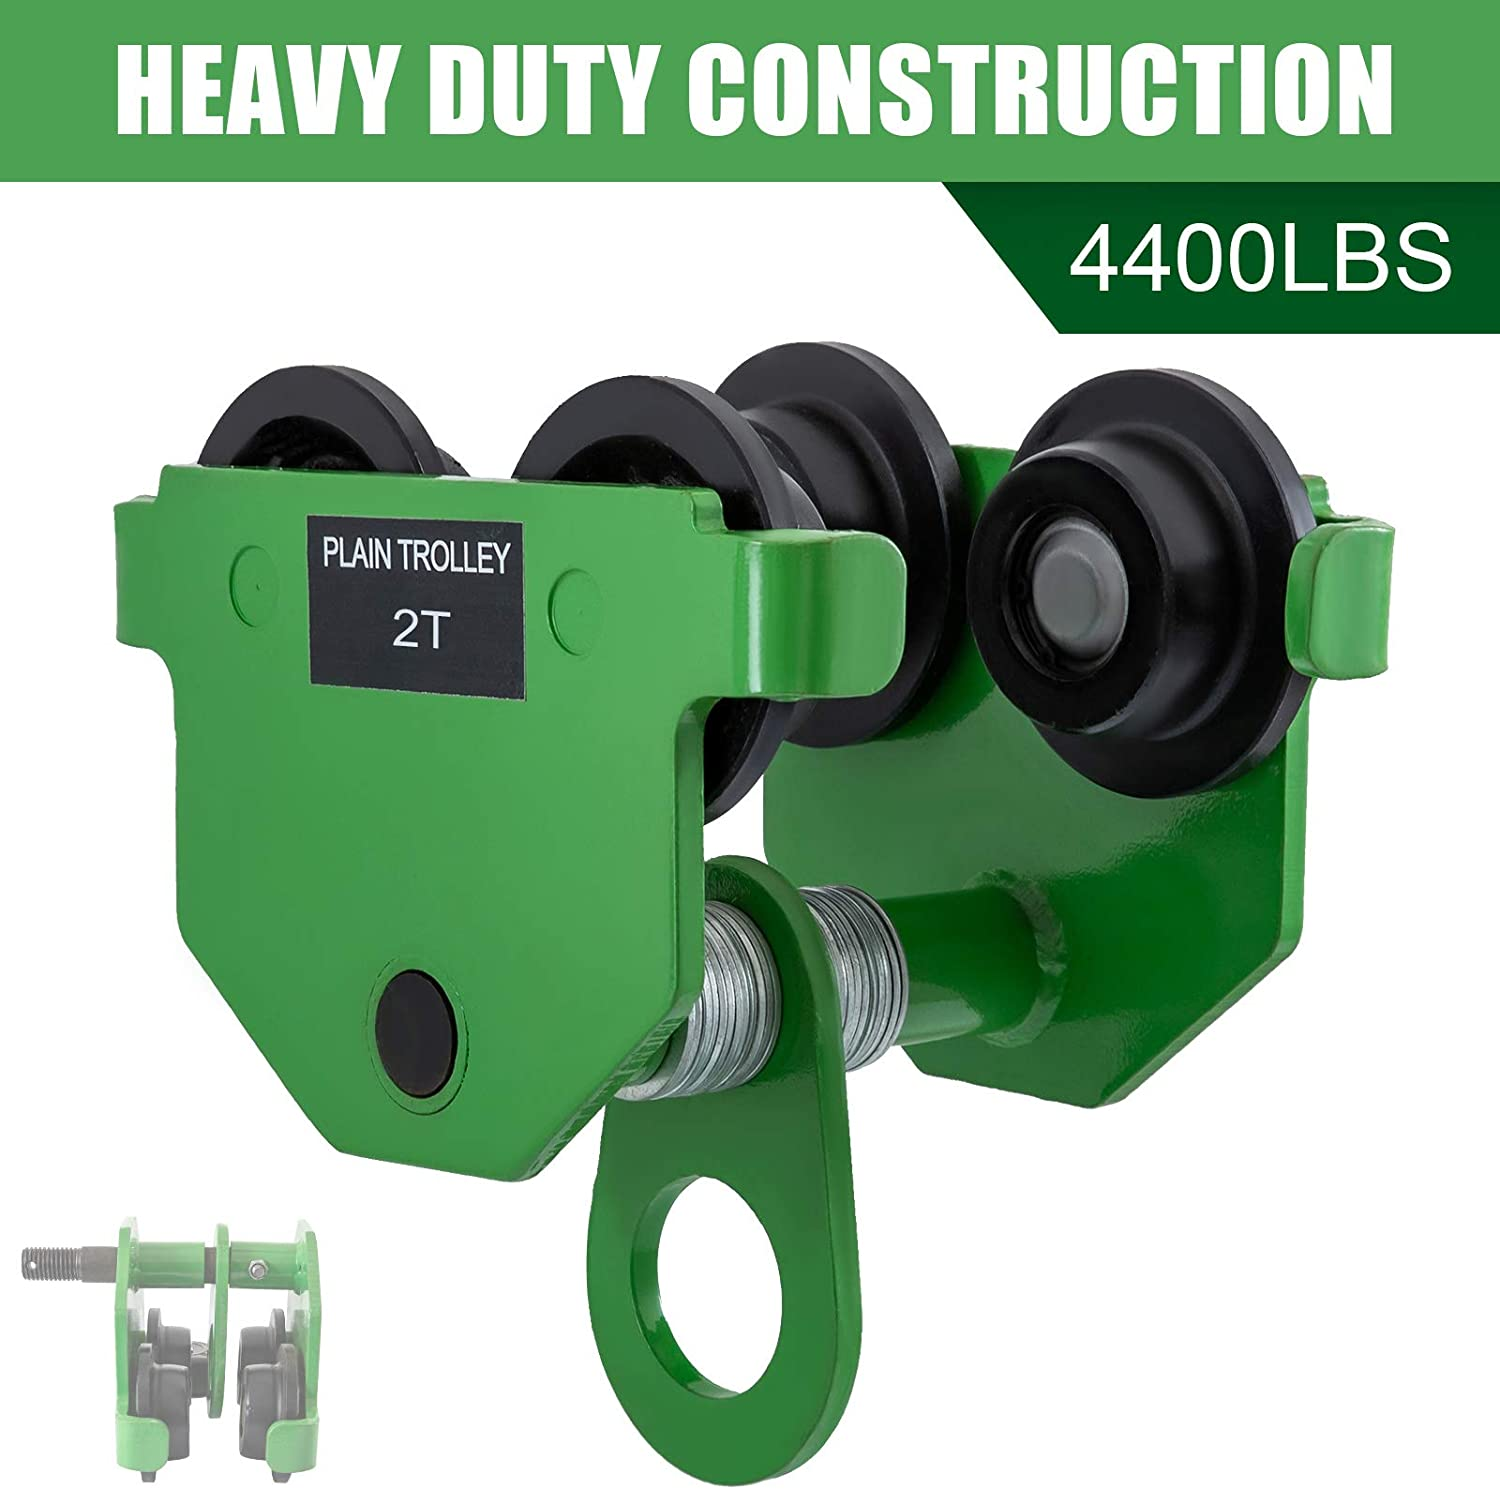 Hoists, Winches & Rigging 2T Push Beam Trolley Manual Roller ...